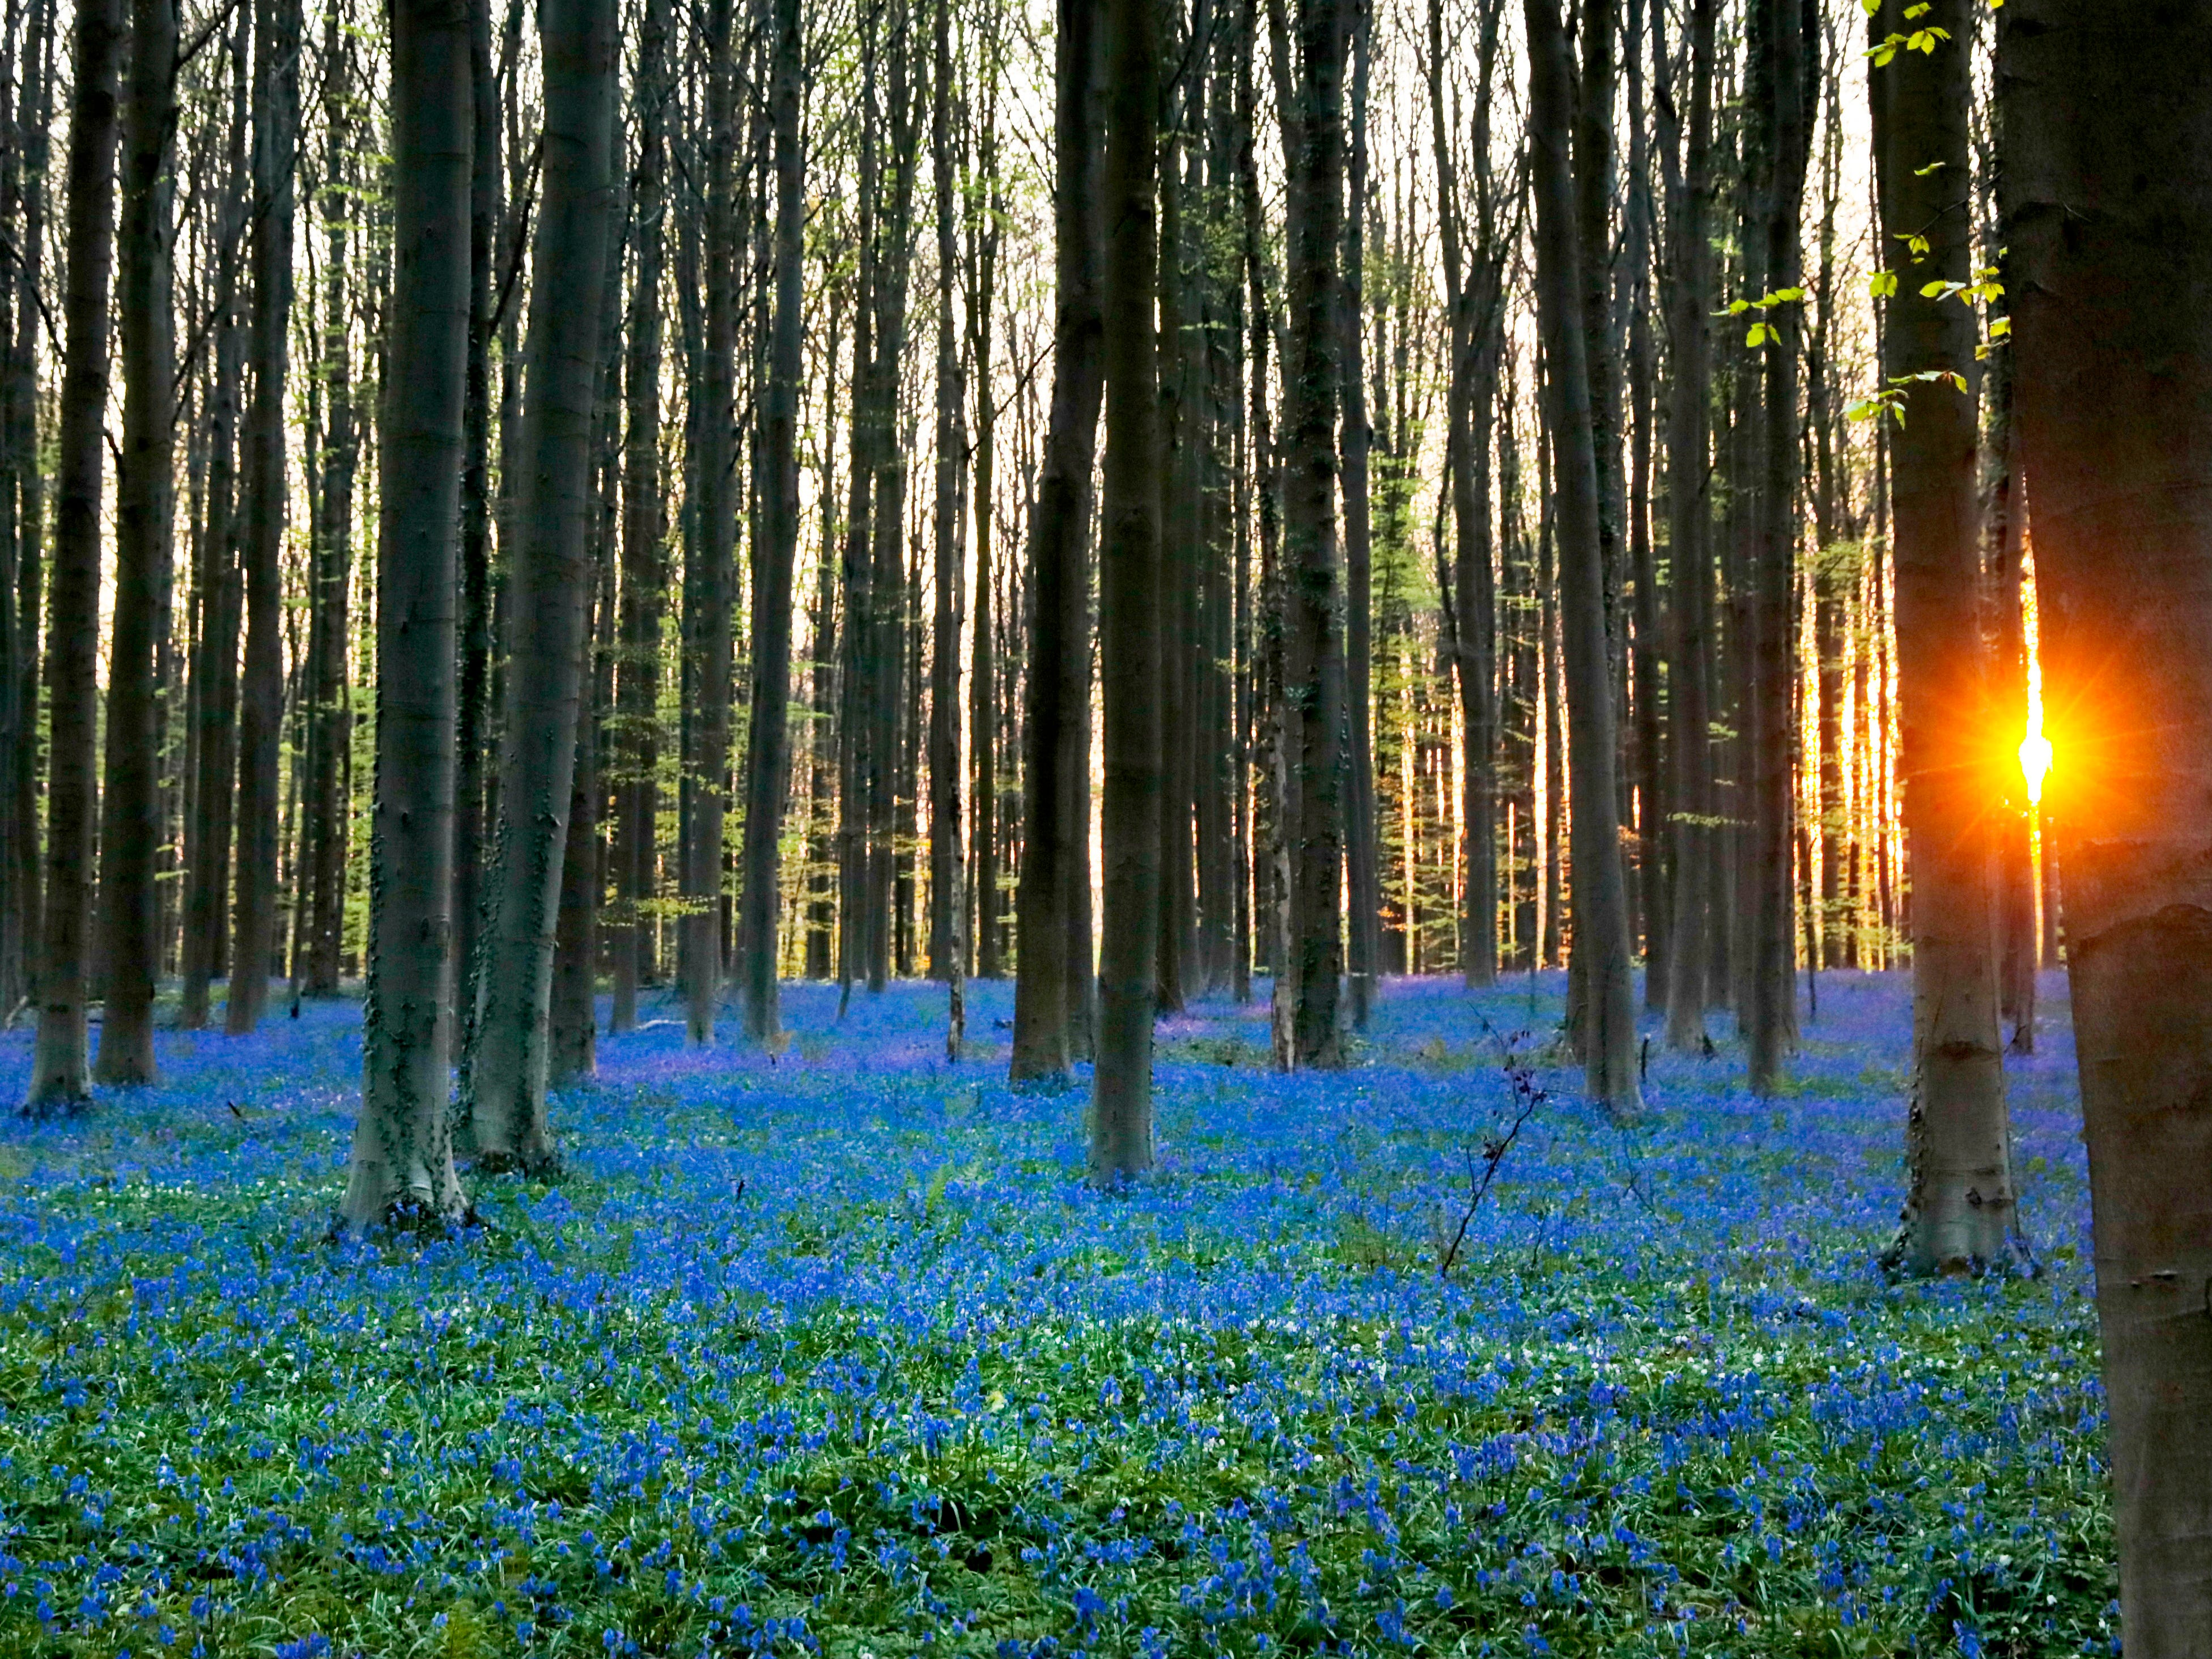 The sun rises over a carpet of wild Hyacinth flowers in the Hallerbos in Halle, Belgium, Friday, April 19, 2019. The wild Hyacinths, also known as Bluebells, are particularly associated with ancient woodland.